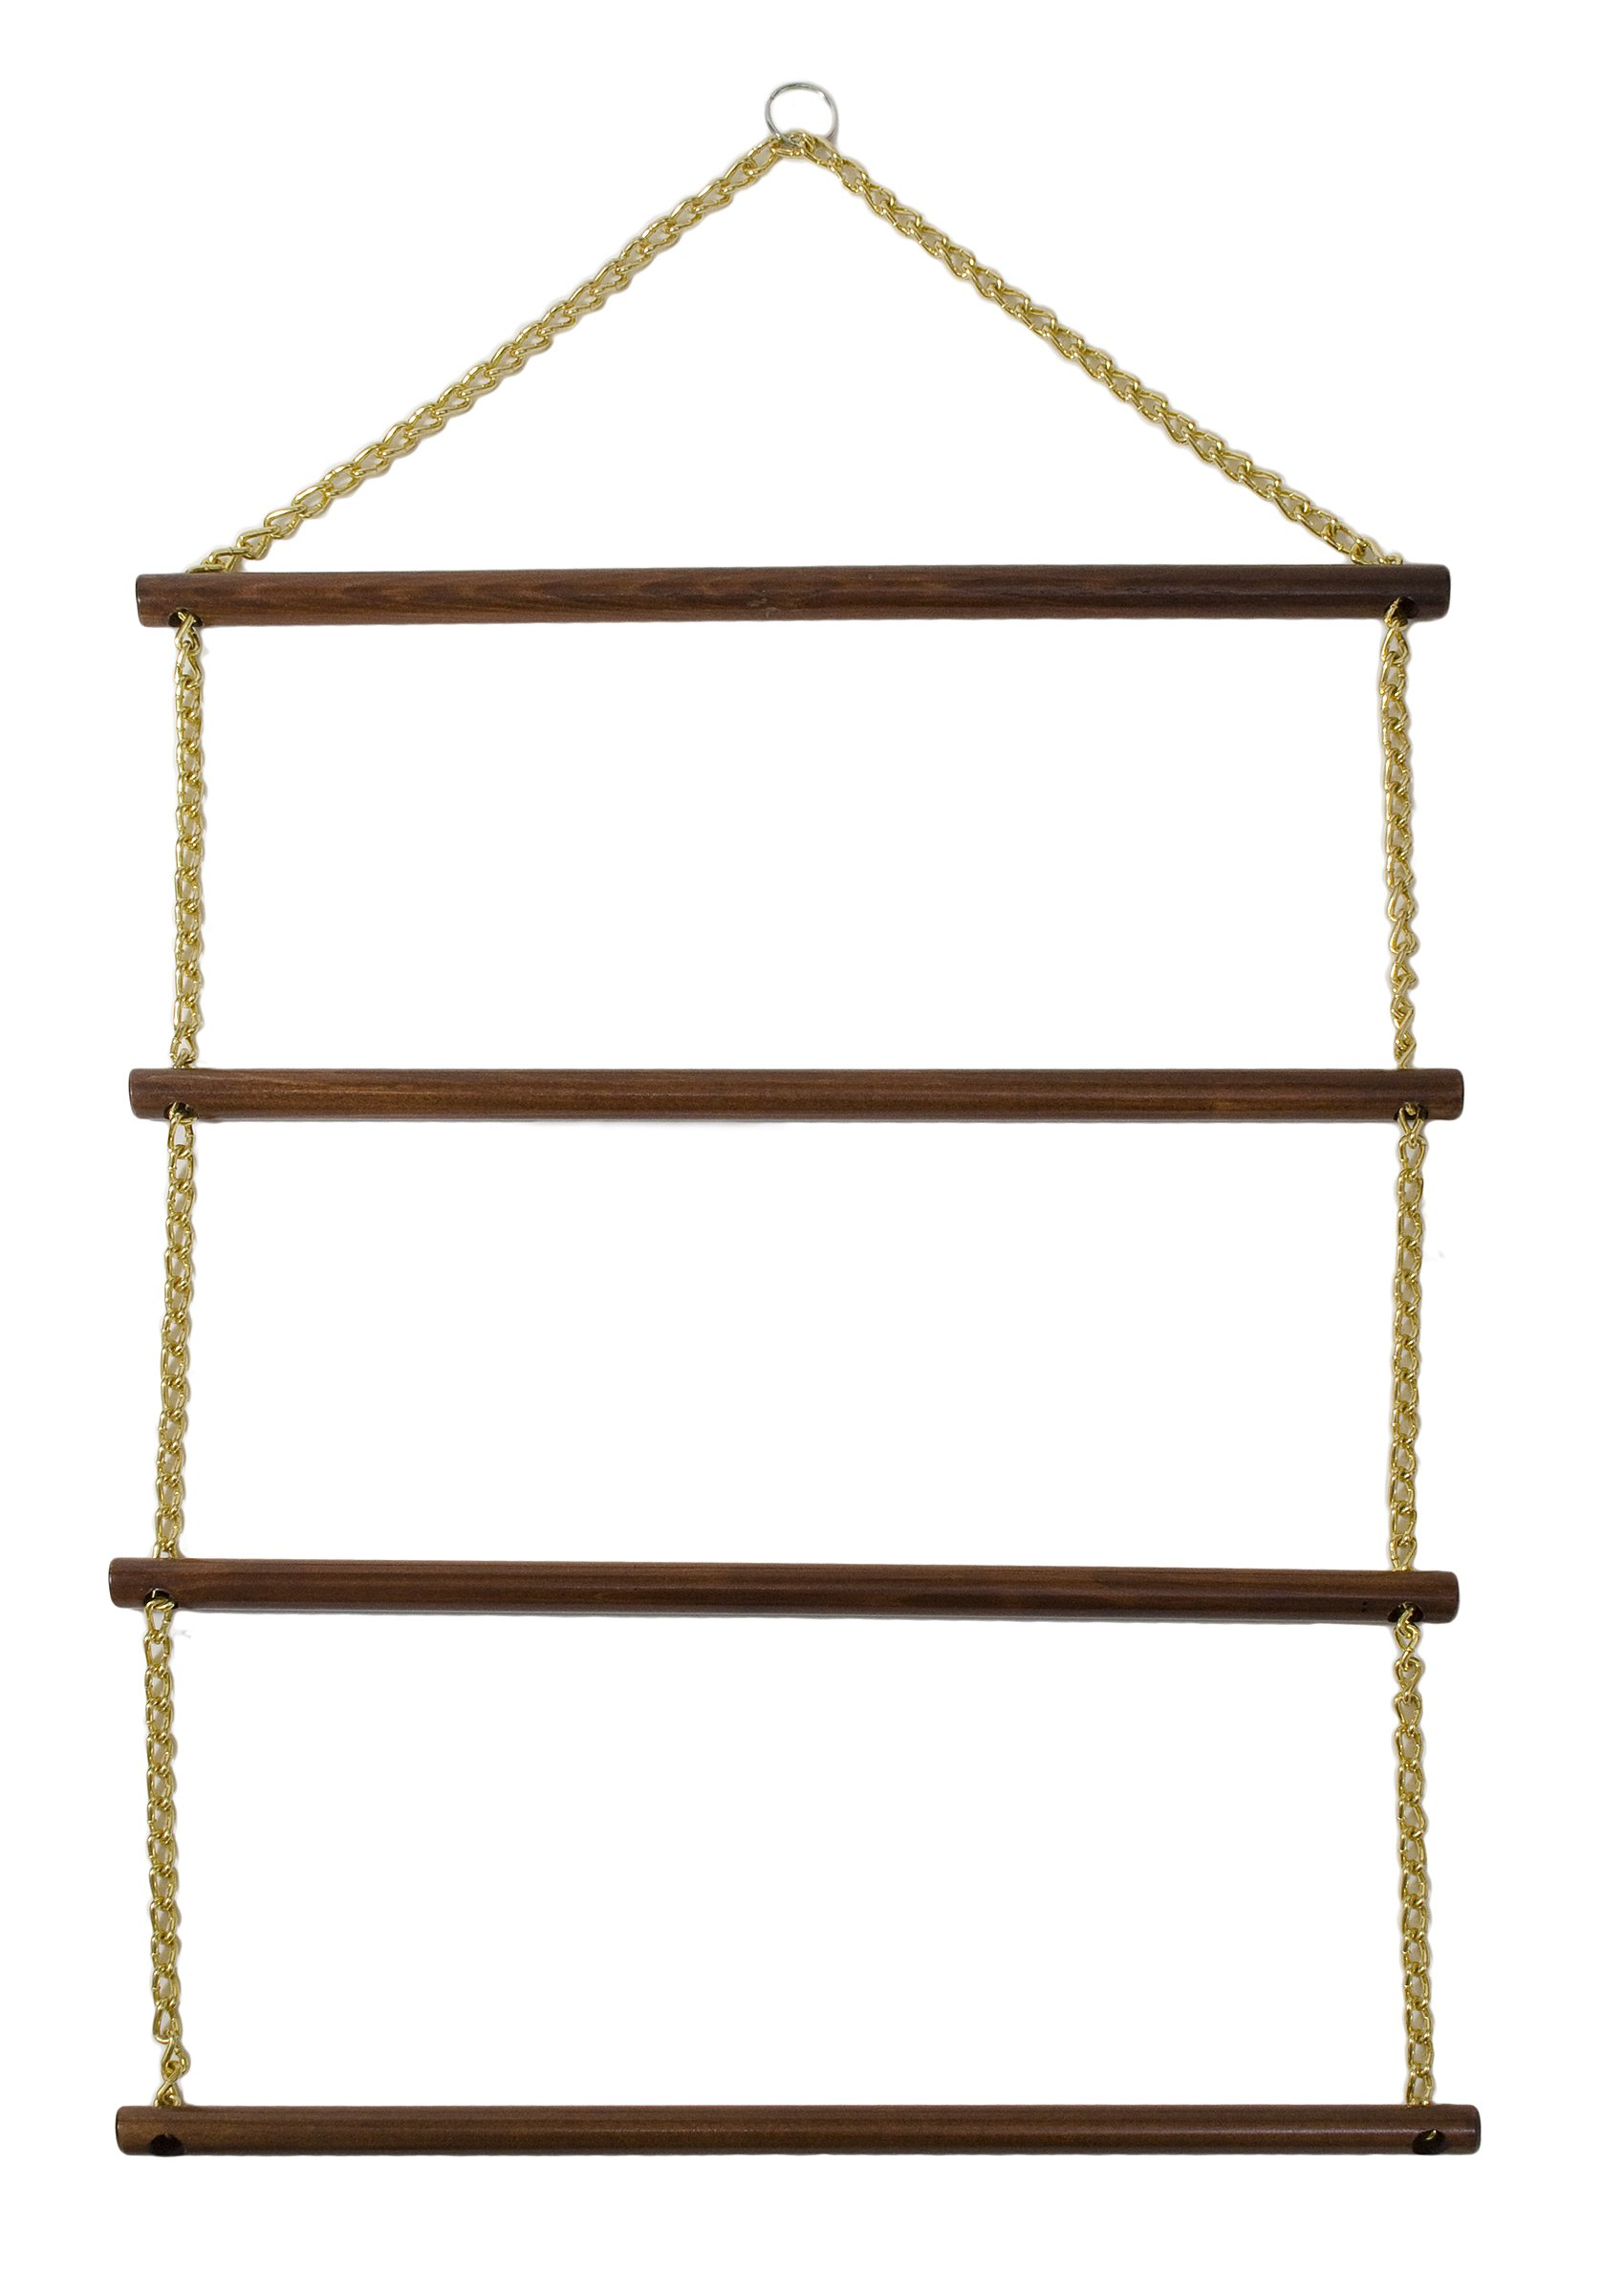 Horse Fare Products Wood Blanket Rack- 36'' Made in the USA by Horse Fare Products